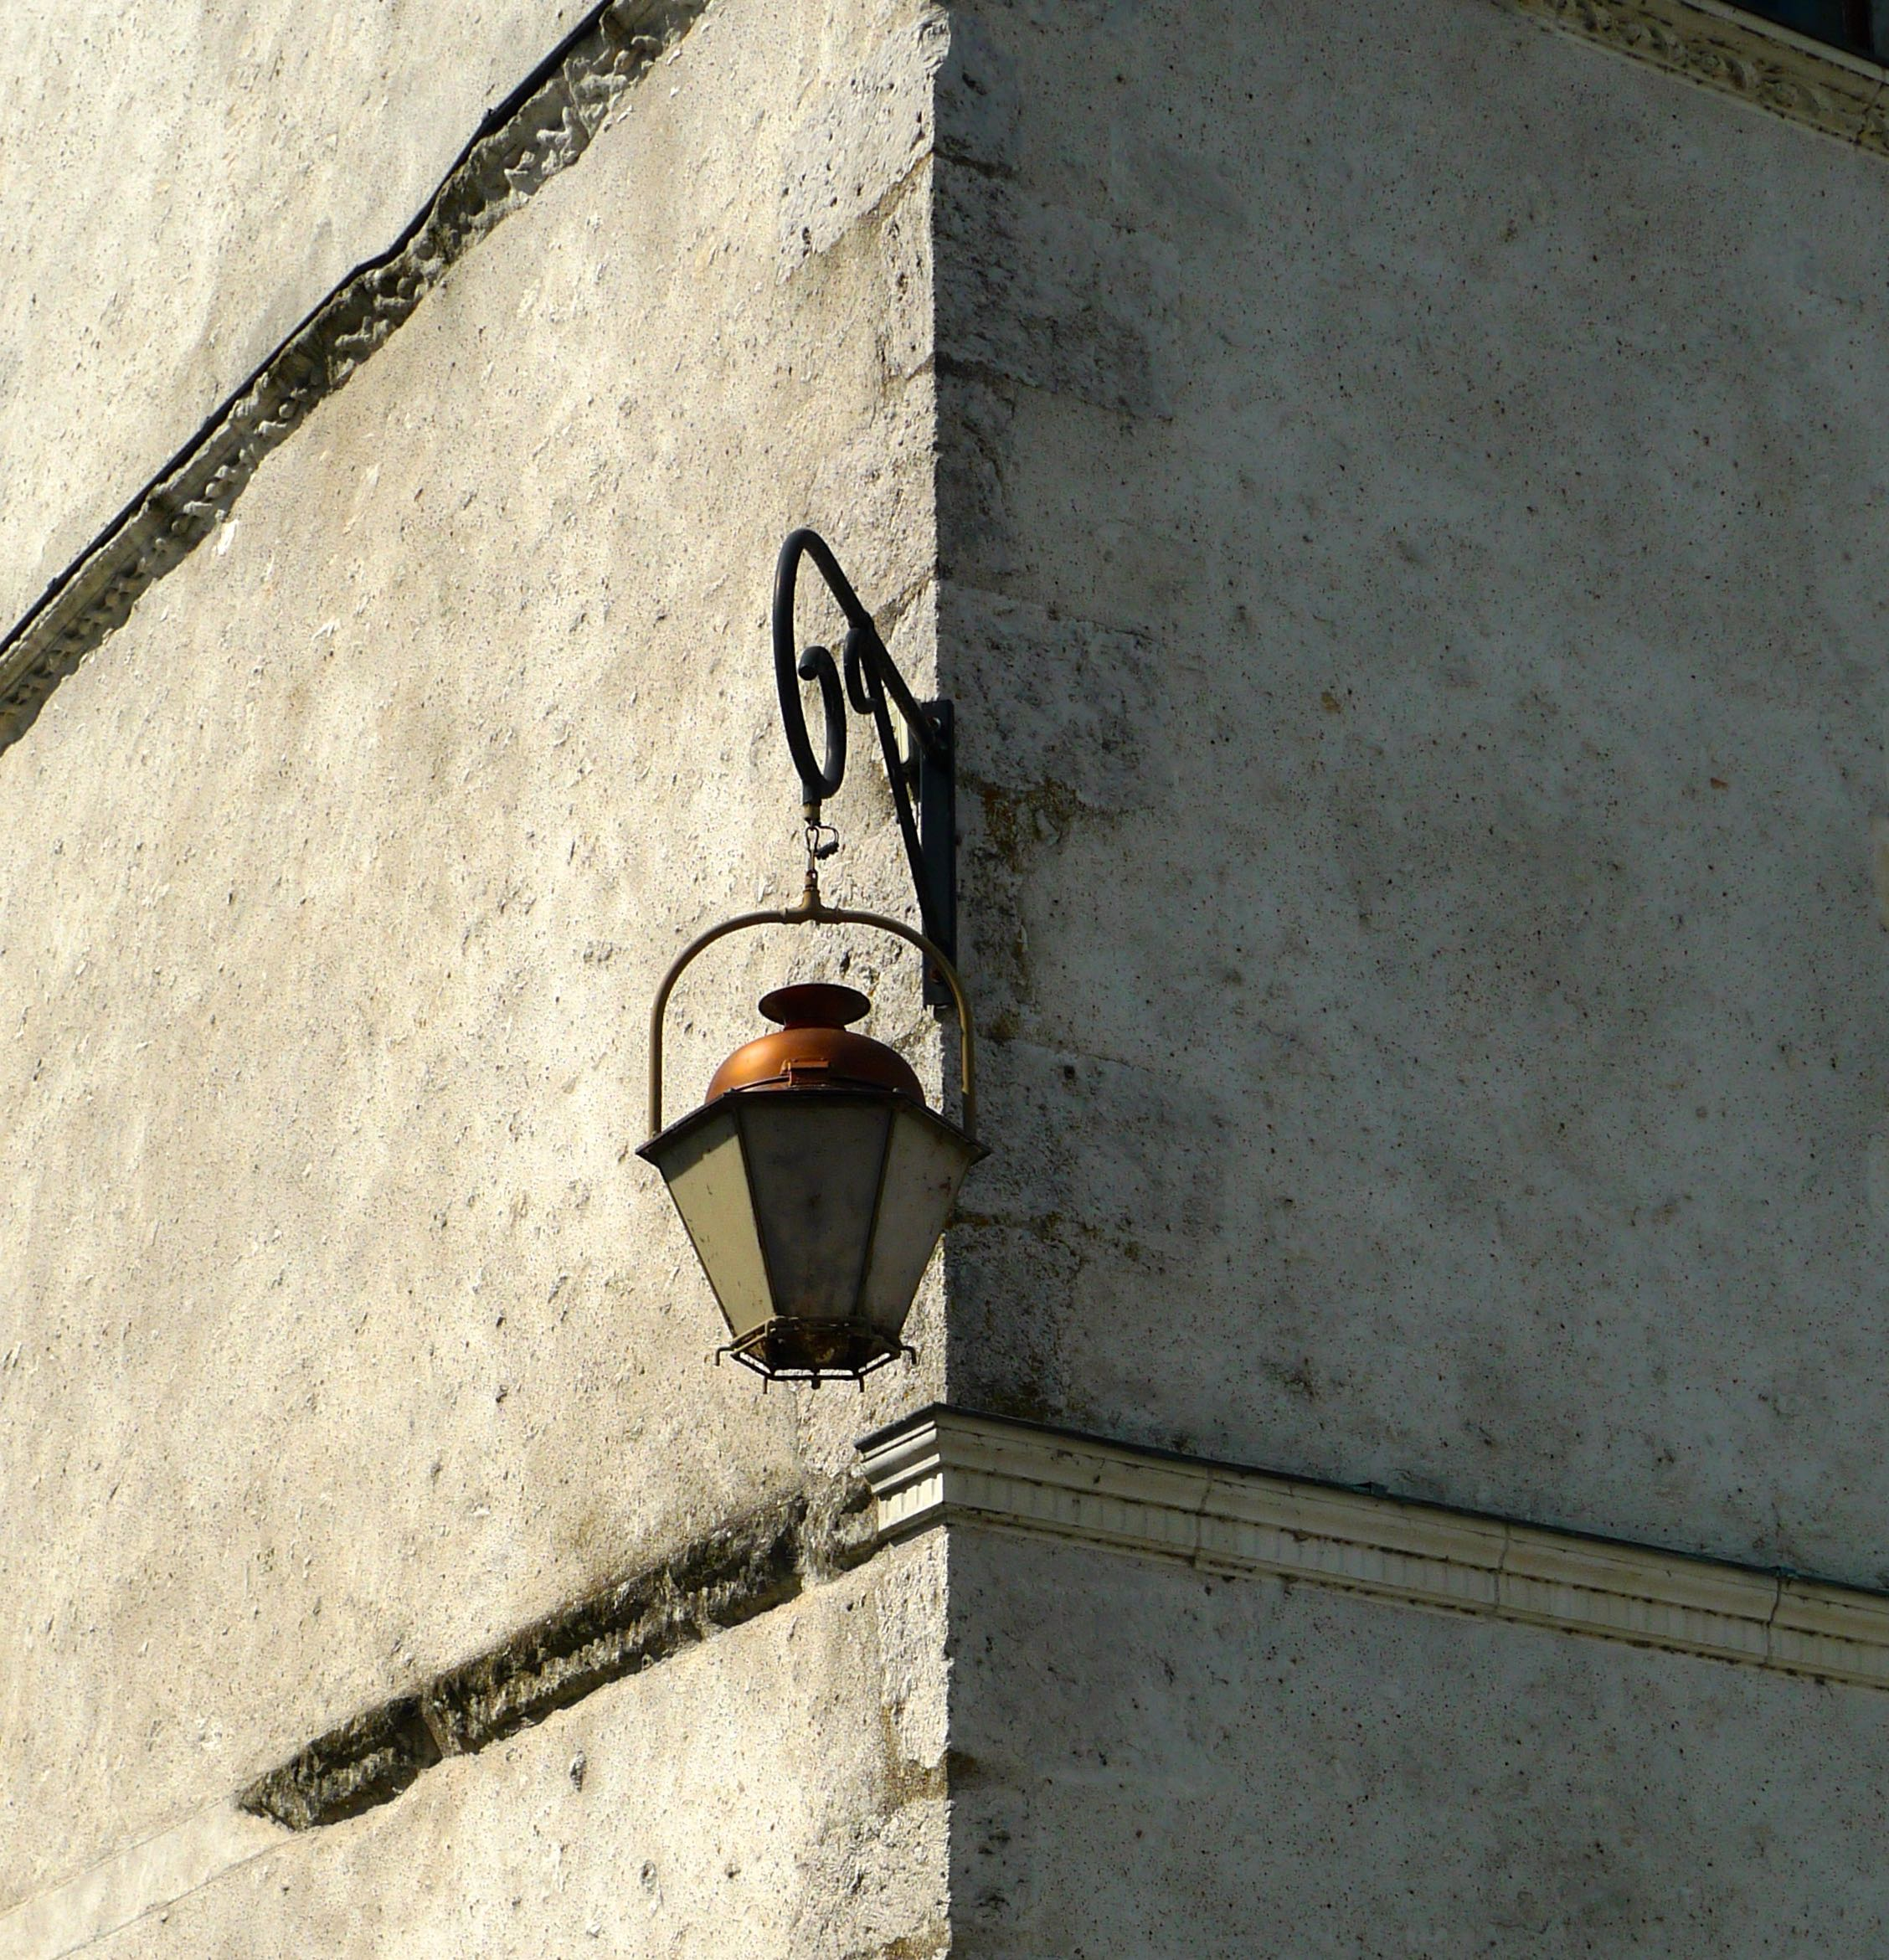 A lantern on the corner of the building